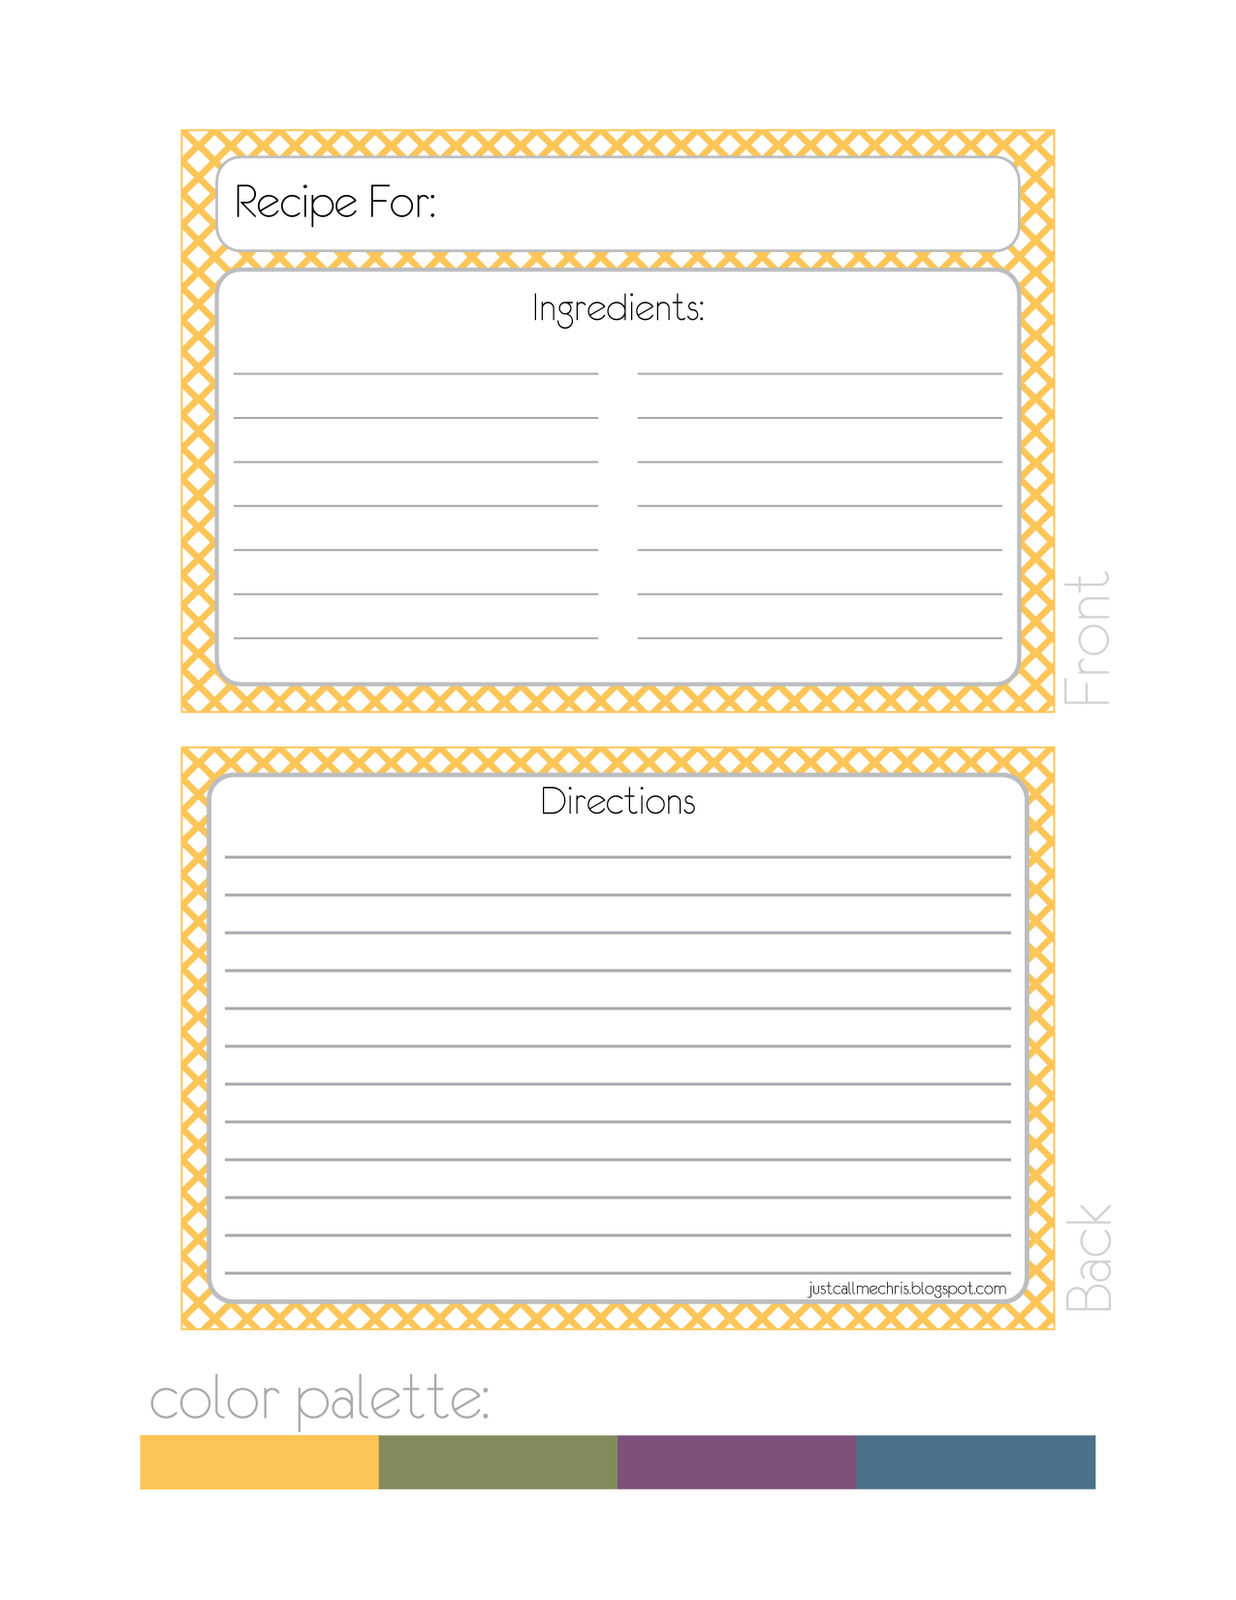 Free Printable Recipe Card Template This Can Be So Exciting Get